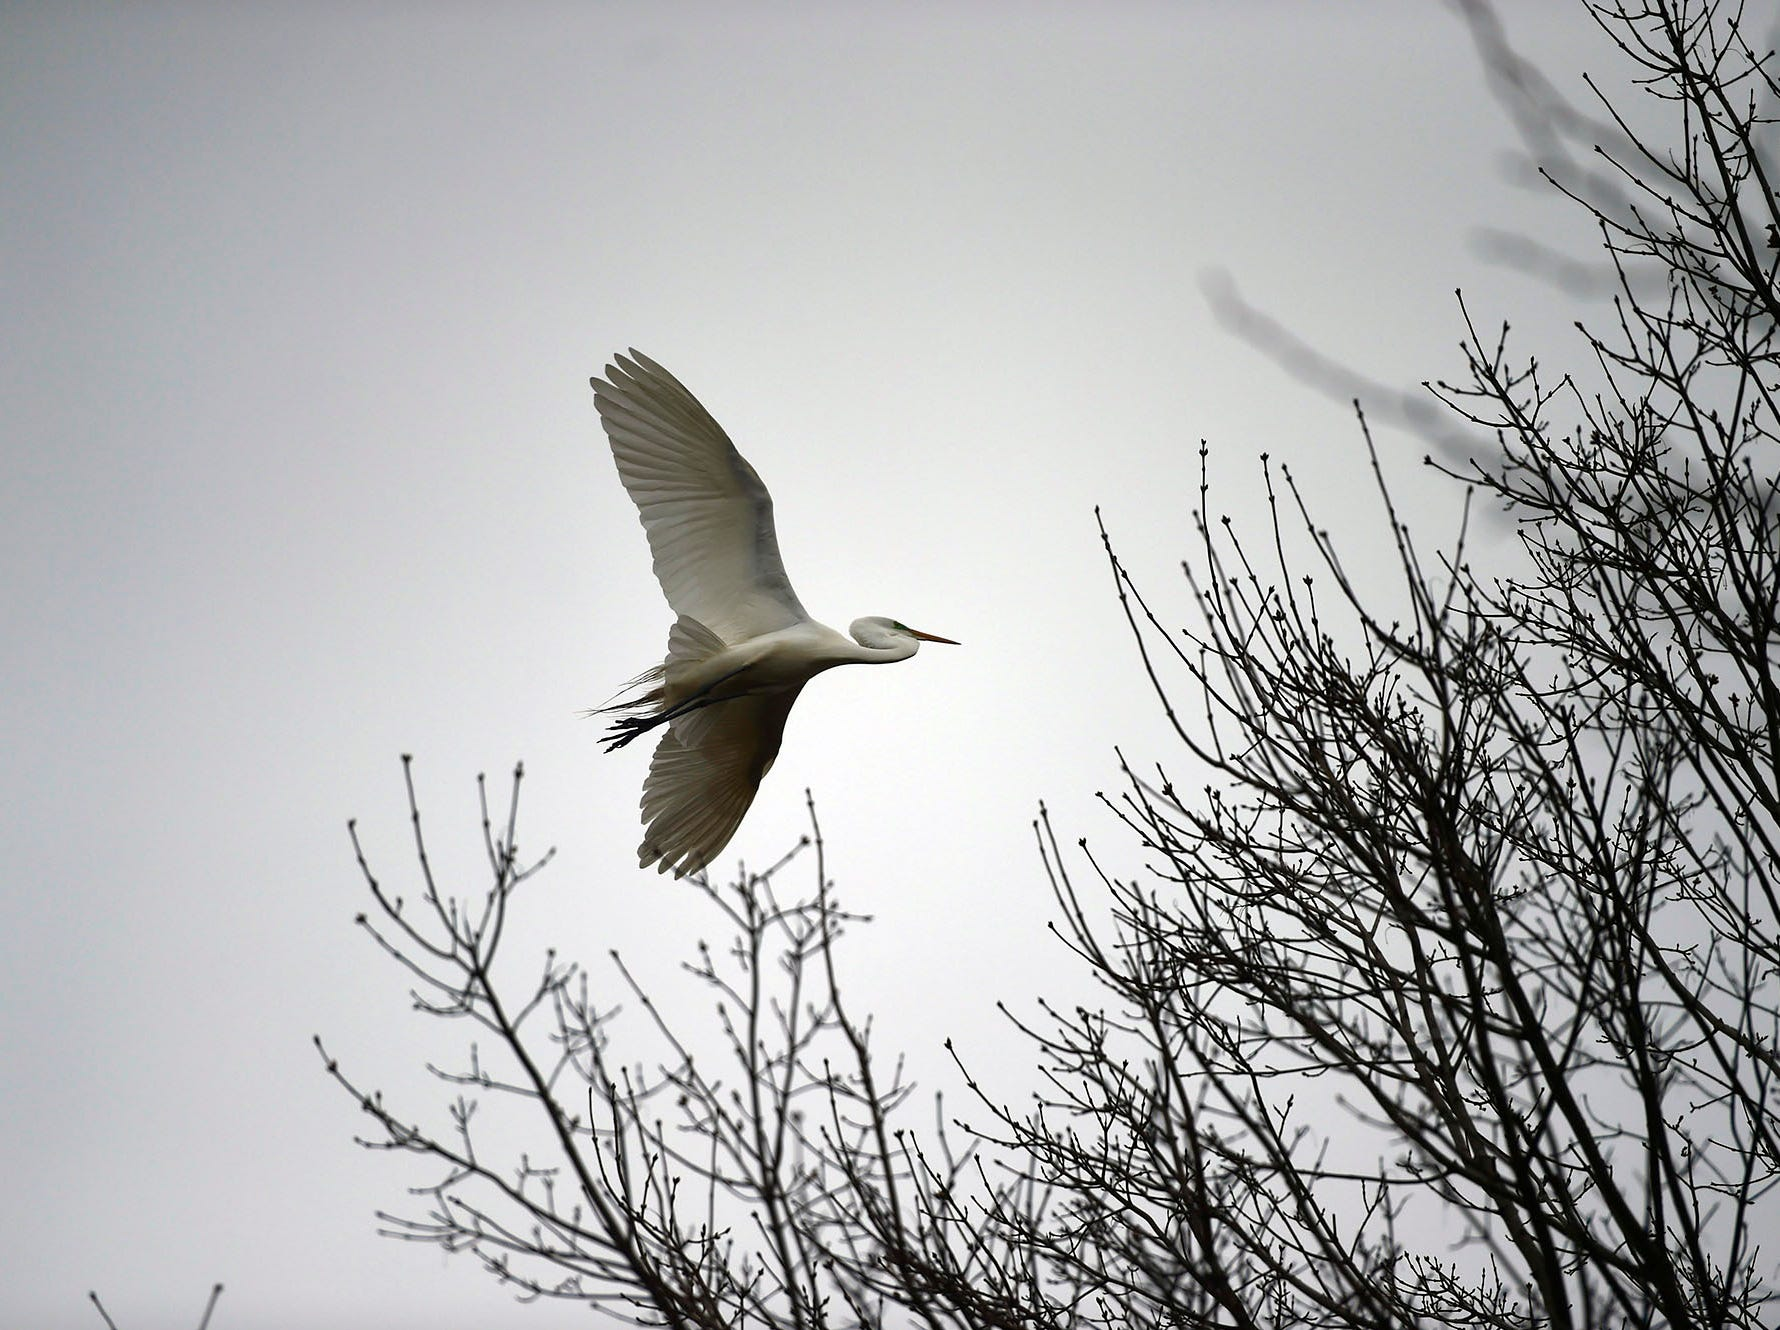 A great egret flies above the trees around Kiwanis Lake in York Saturday, April 6, 2019.